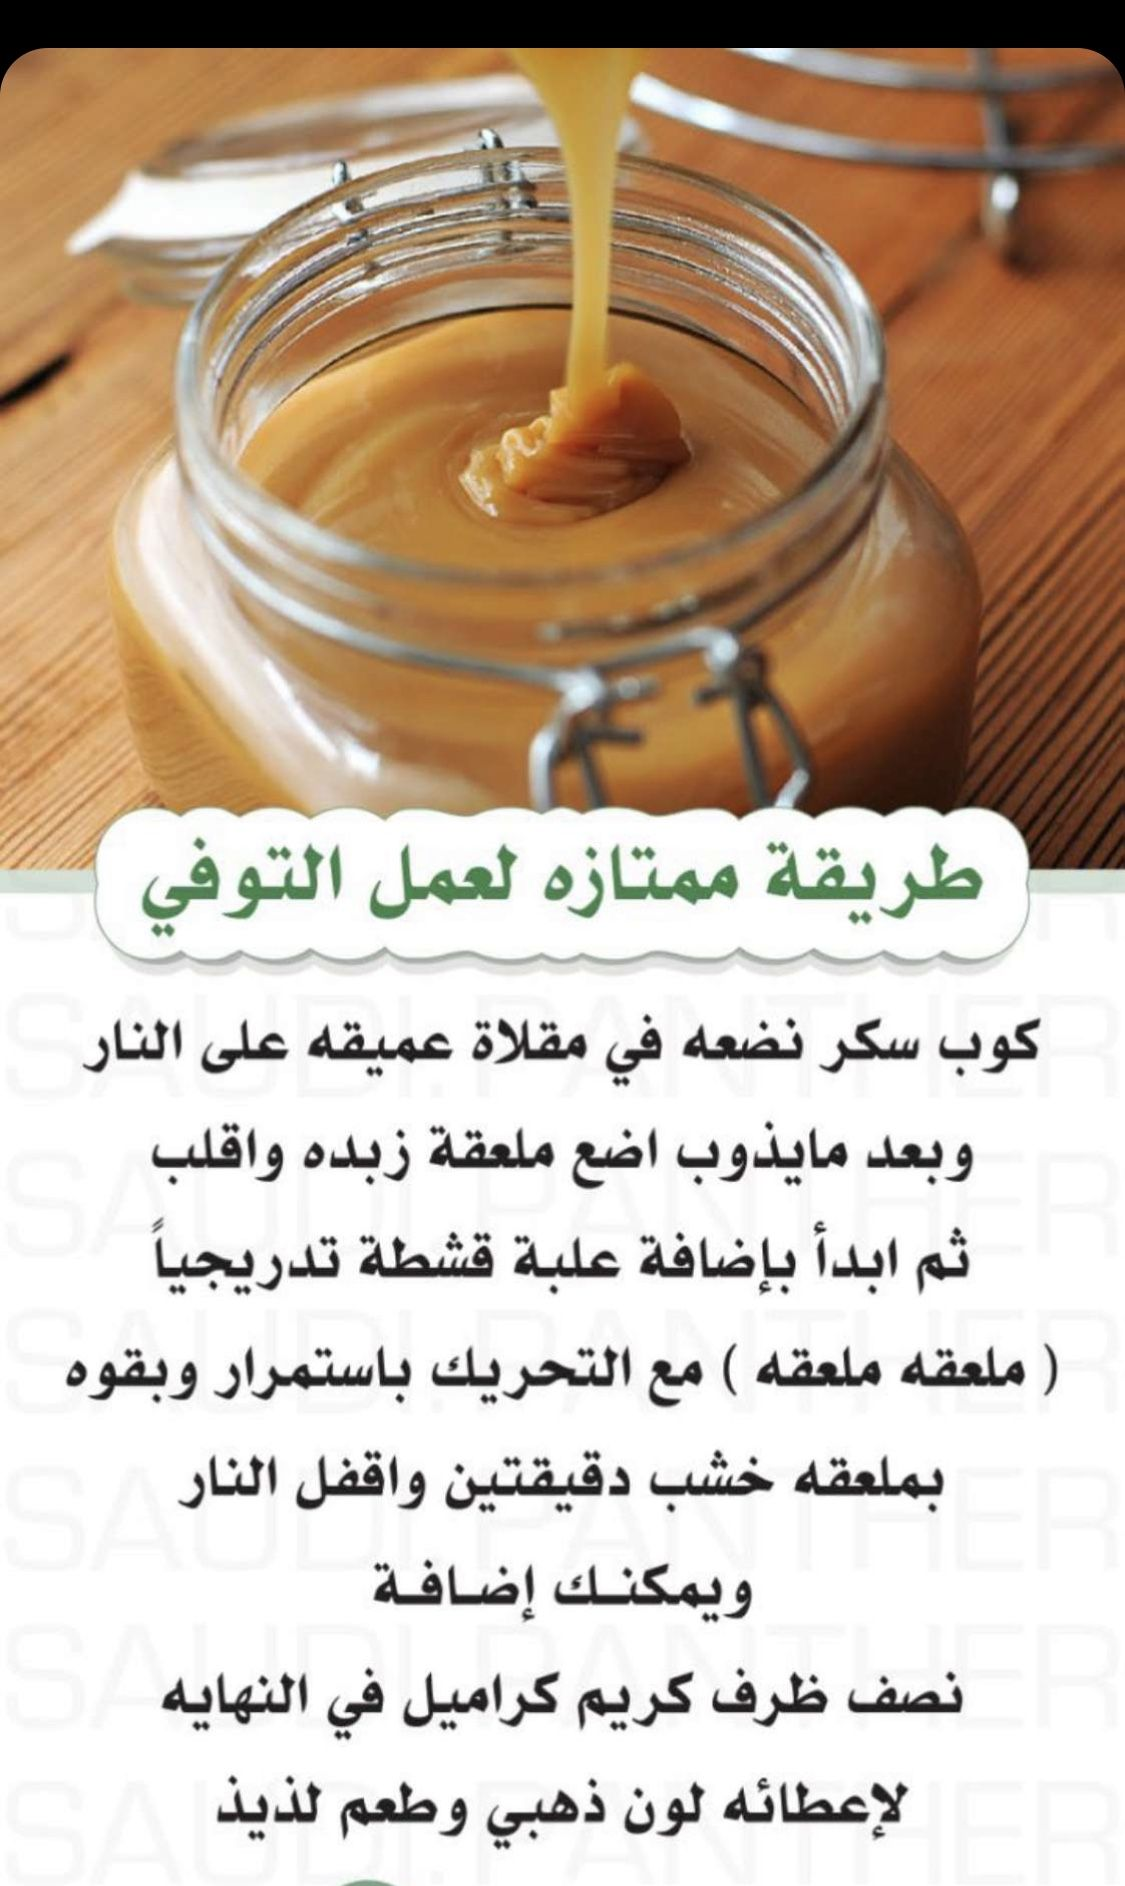 Pin By Istifada استفادة On Recipes Arabic Sweets Food Recipes